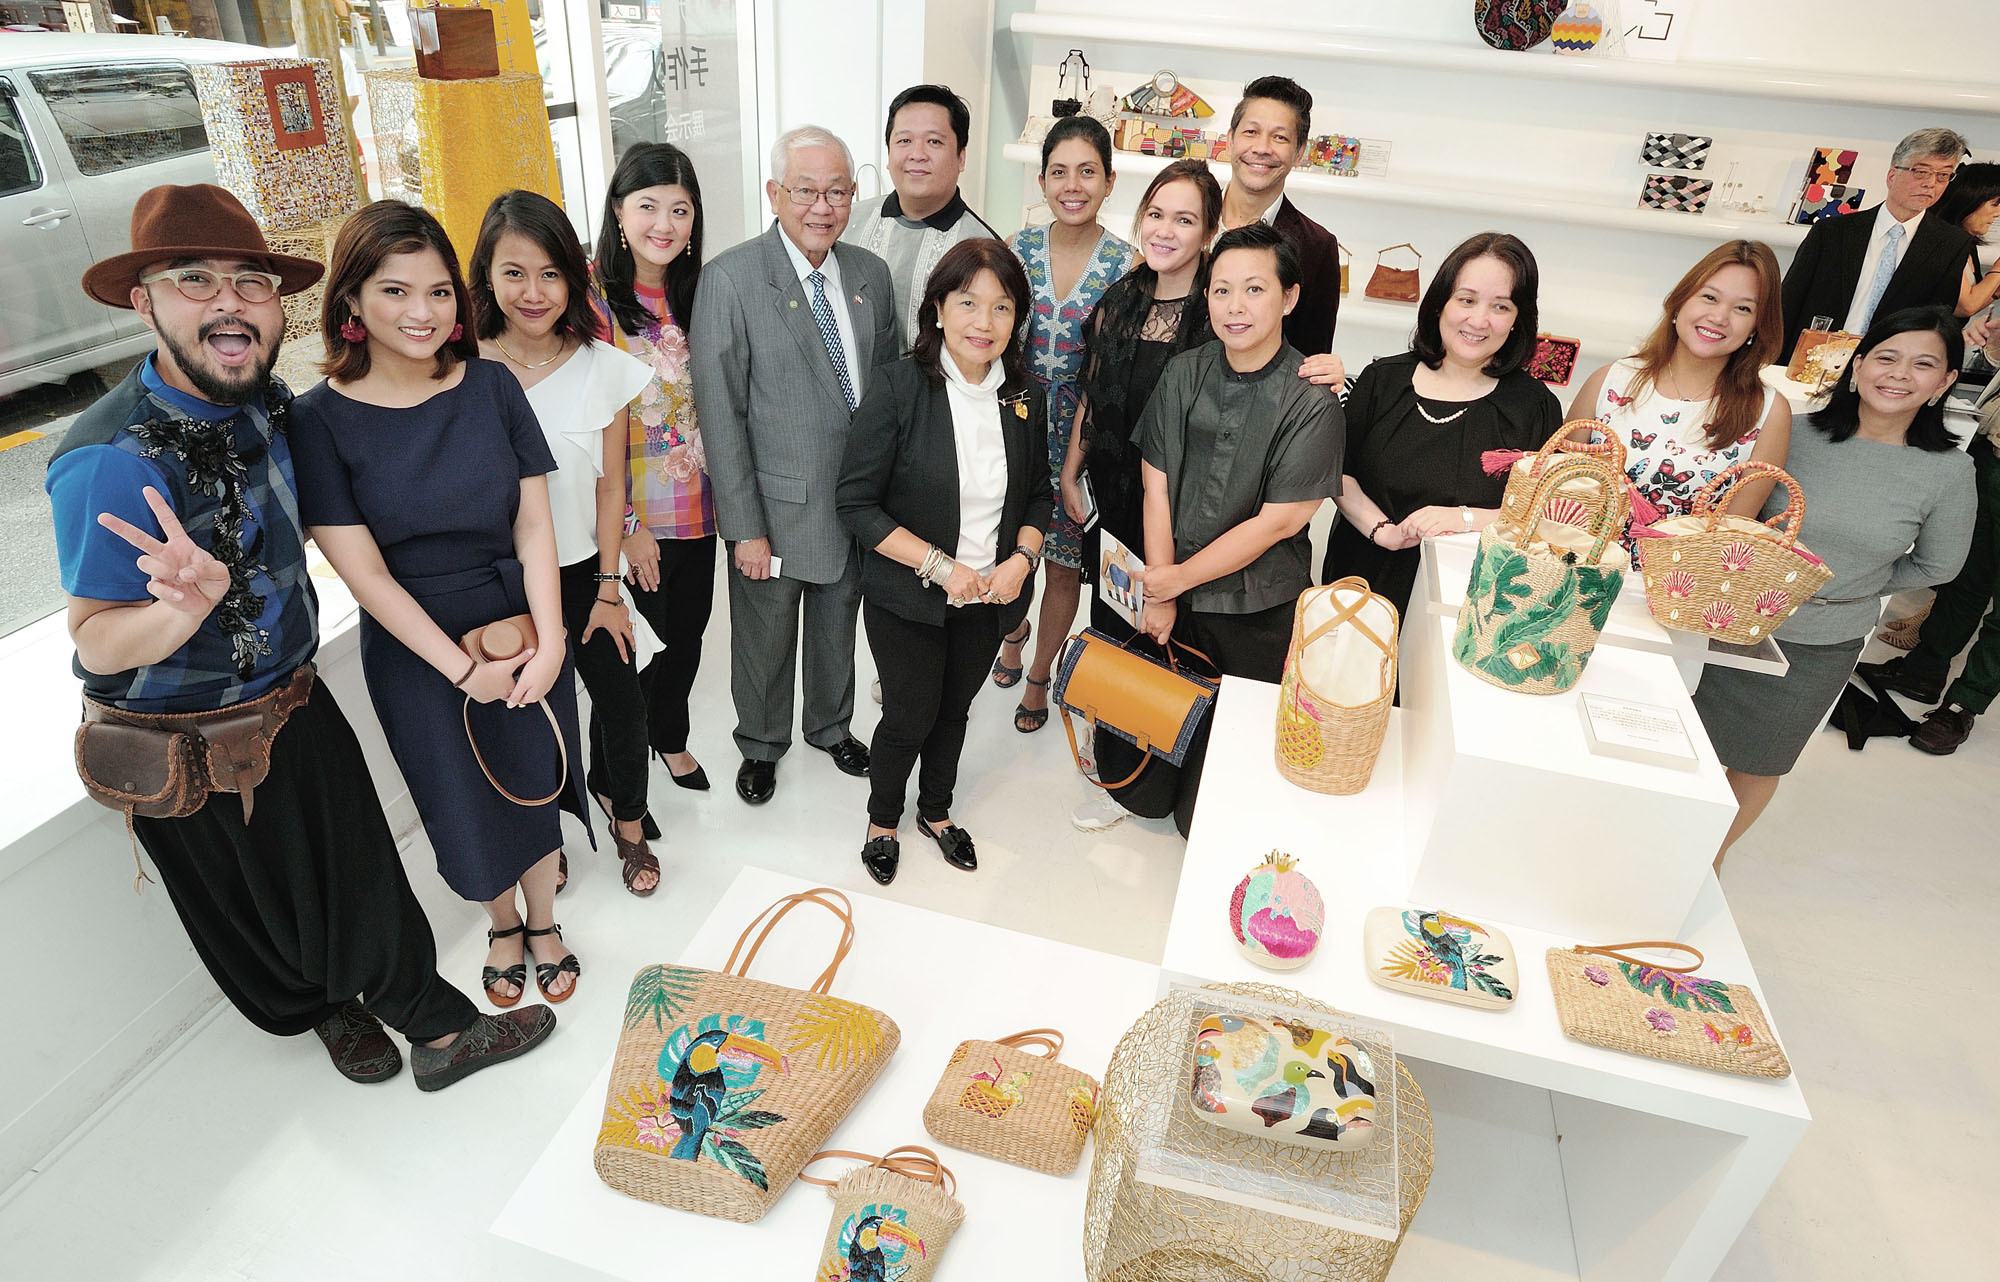 Philippines Ambassador Jose C. Laurel V (fifth from left) poses for a photo during the opening ceremony of the Philippine Design Exhibition at Good Design Marunouchi on Sept. 11. The event runs through Sept. 24. |  YOSHIAKI MIURA